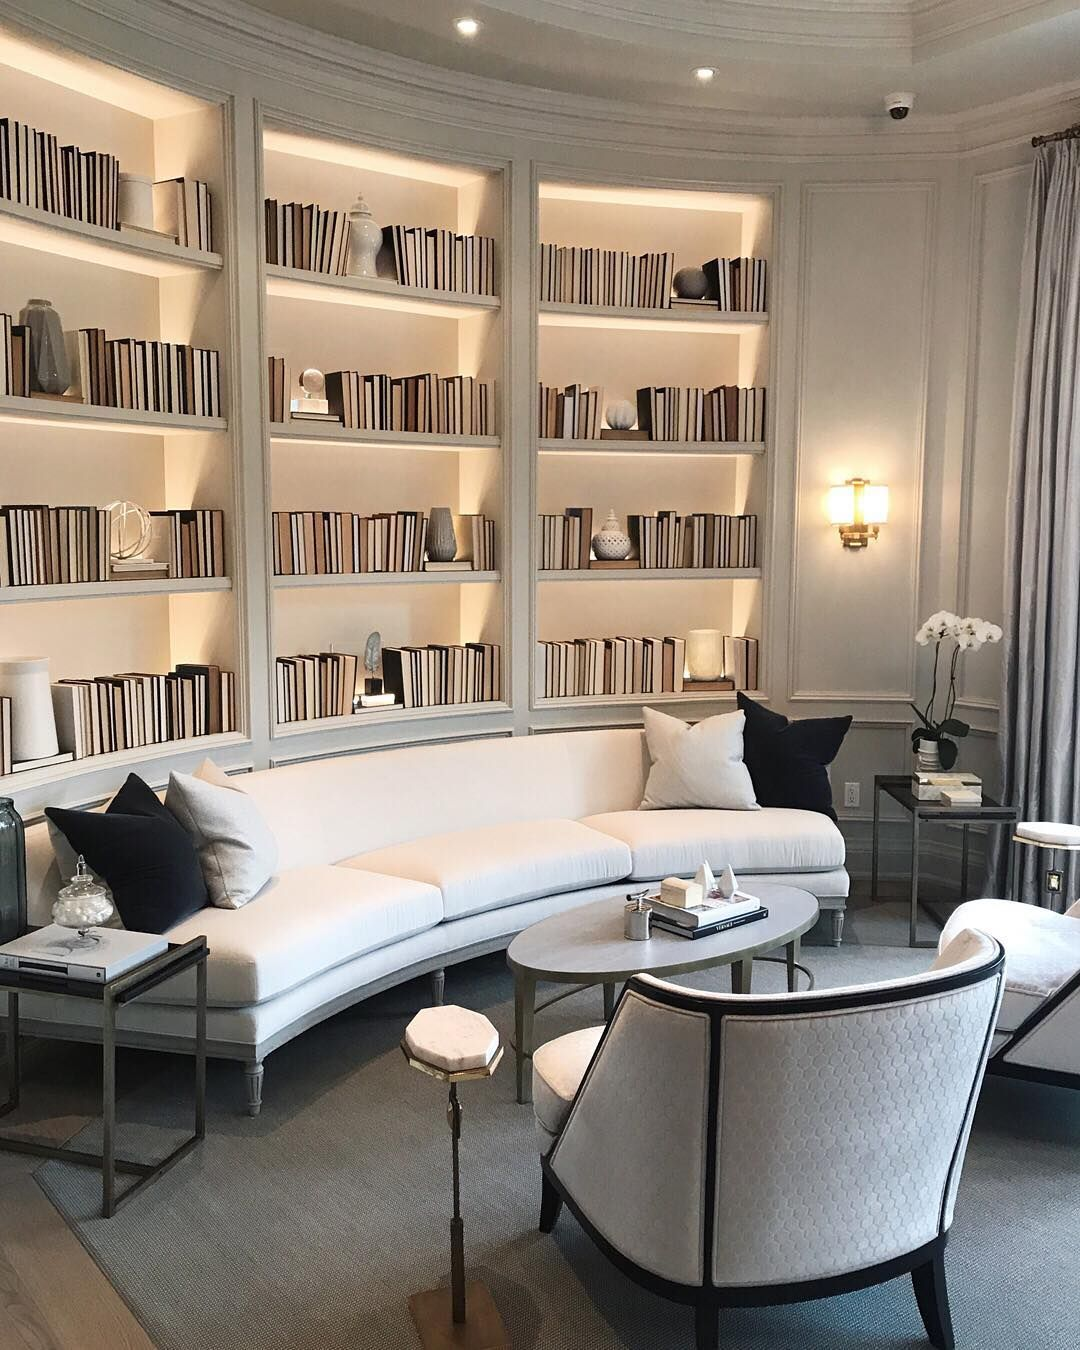 Modern Home Library Design Ideas: Beautiful Library Space. Home Interior. Bookshelves